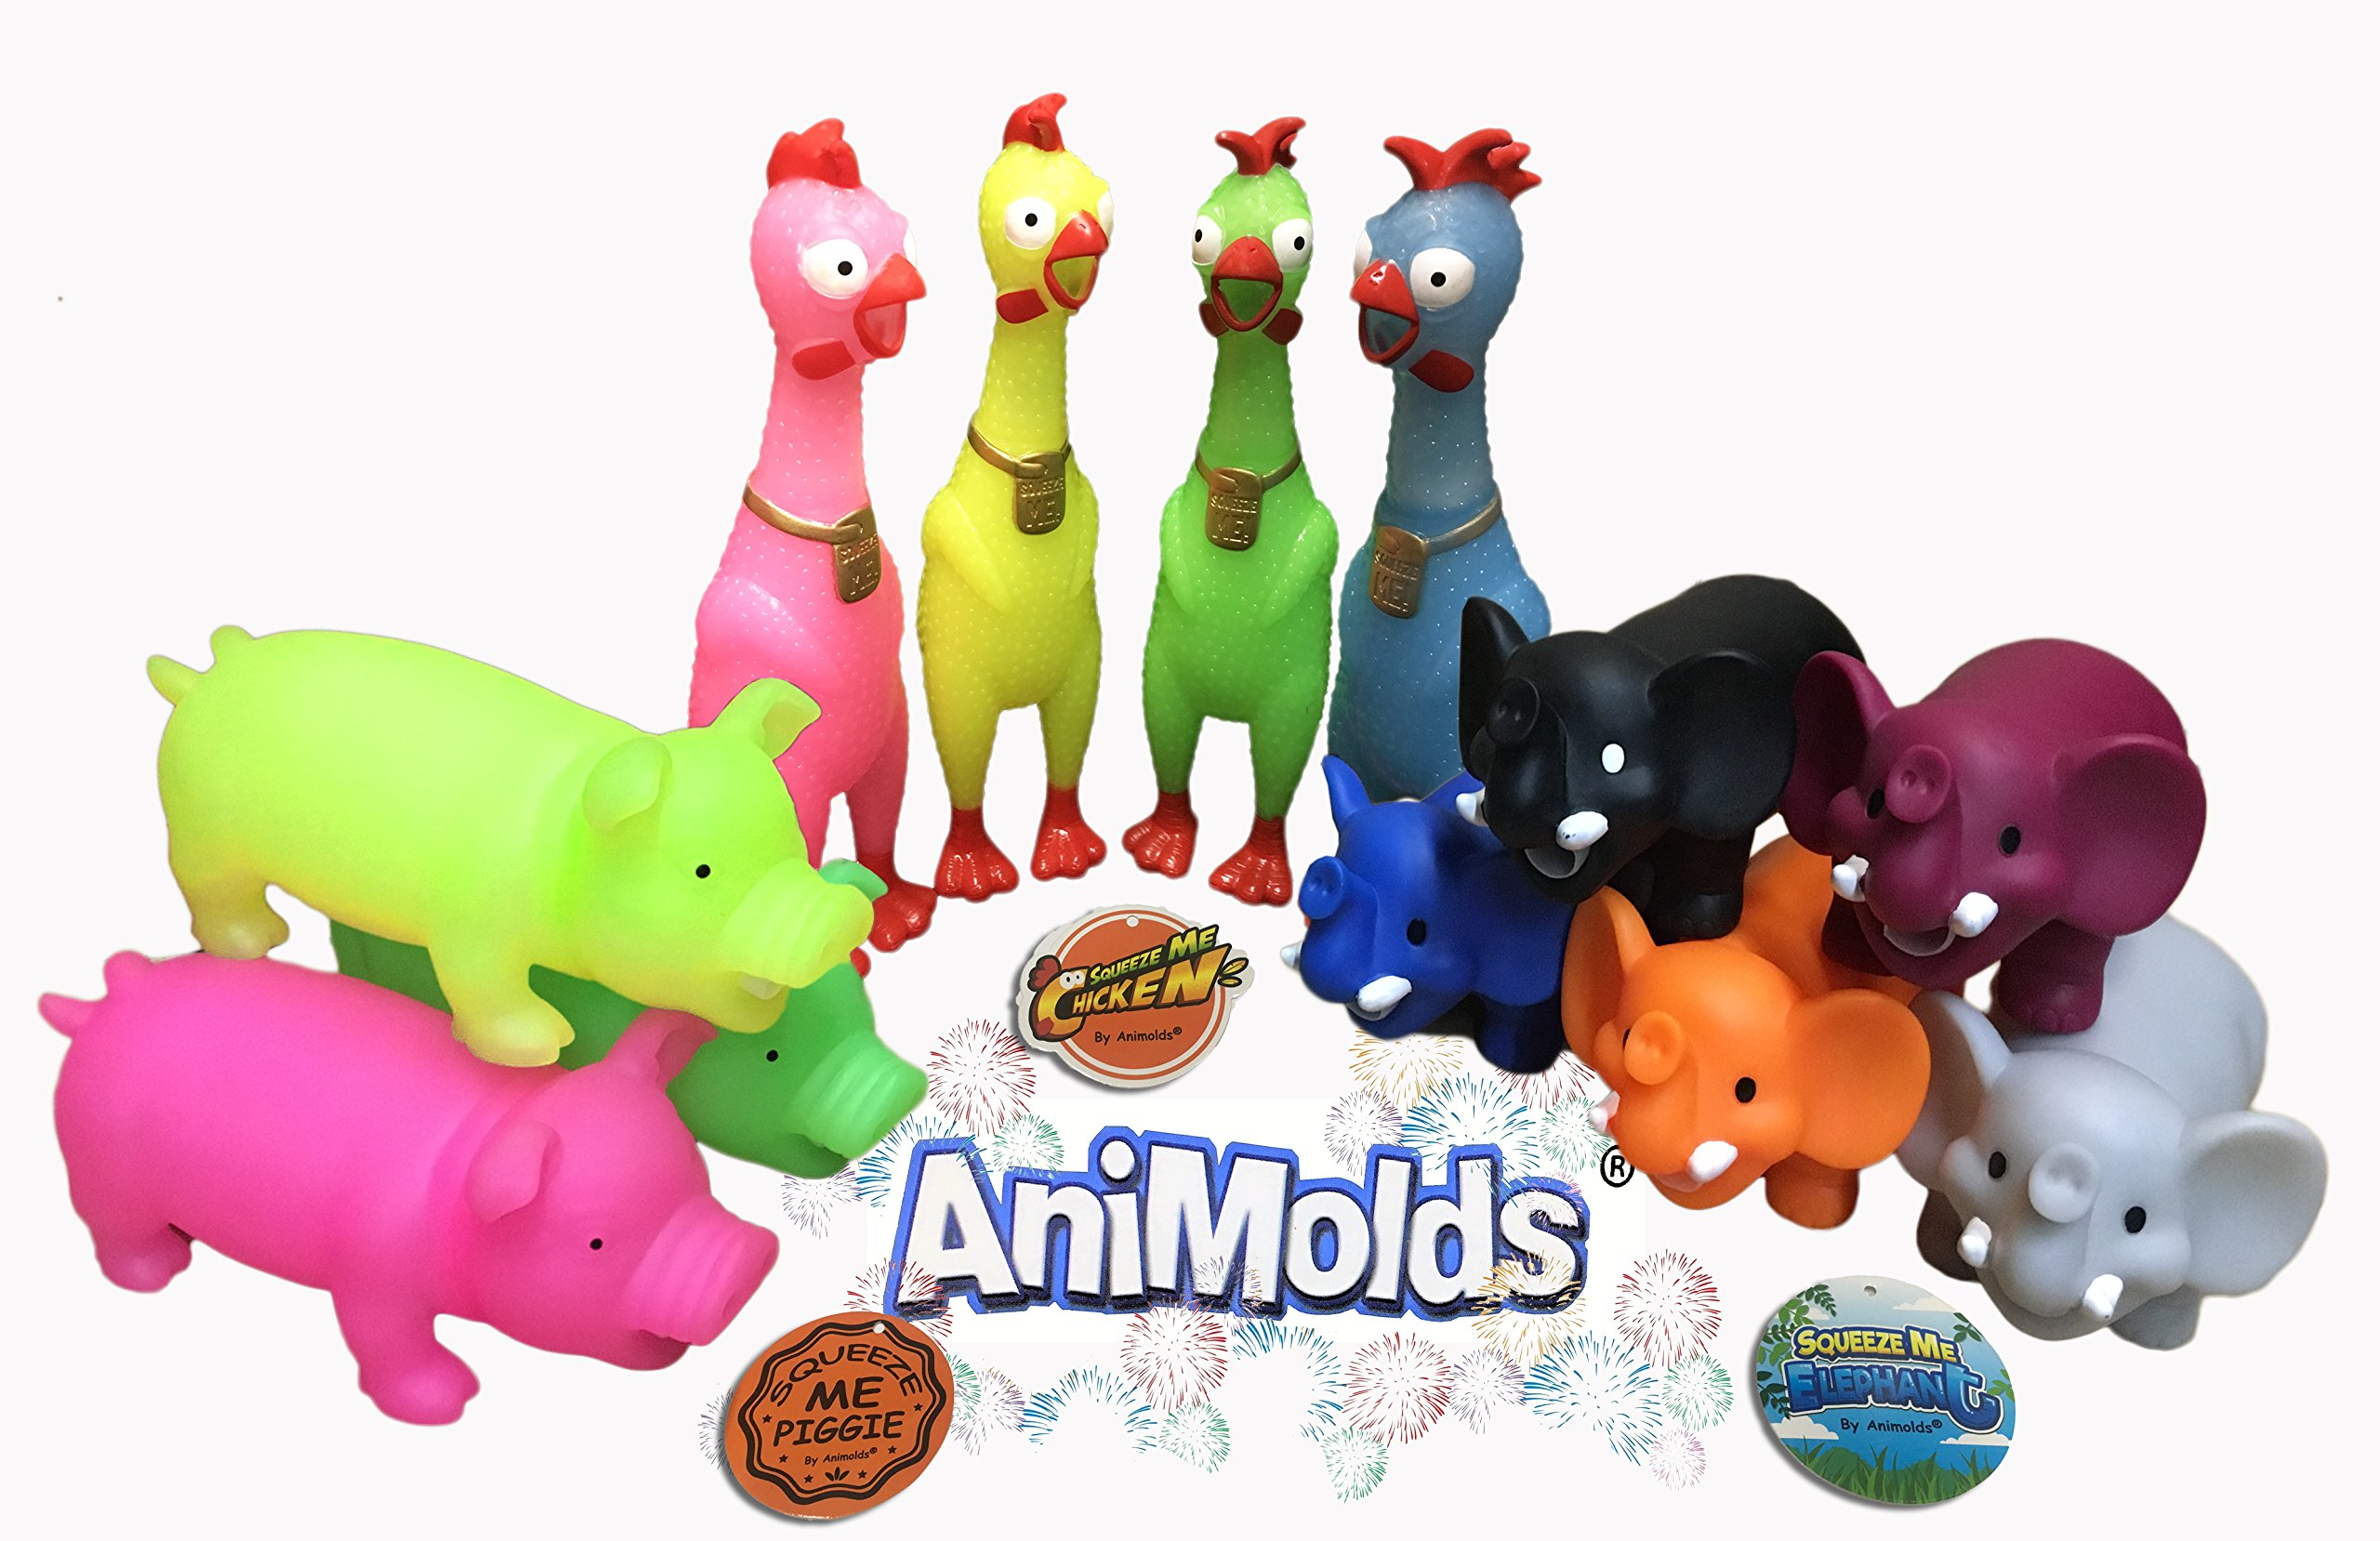 Animolds Animal Toy Pack ''12 Squeeze me Fun Toys'' Elephants Piggies The Despacito Singing Chicken Kids Adults Wholesale & Bulk